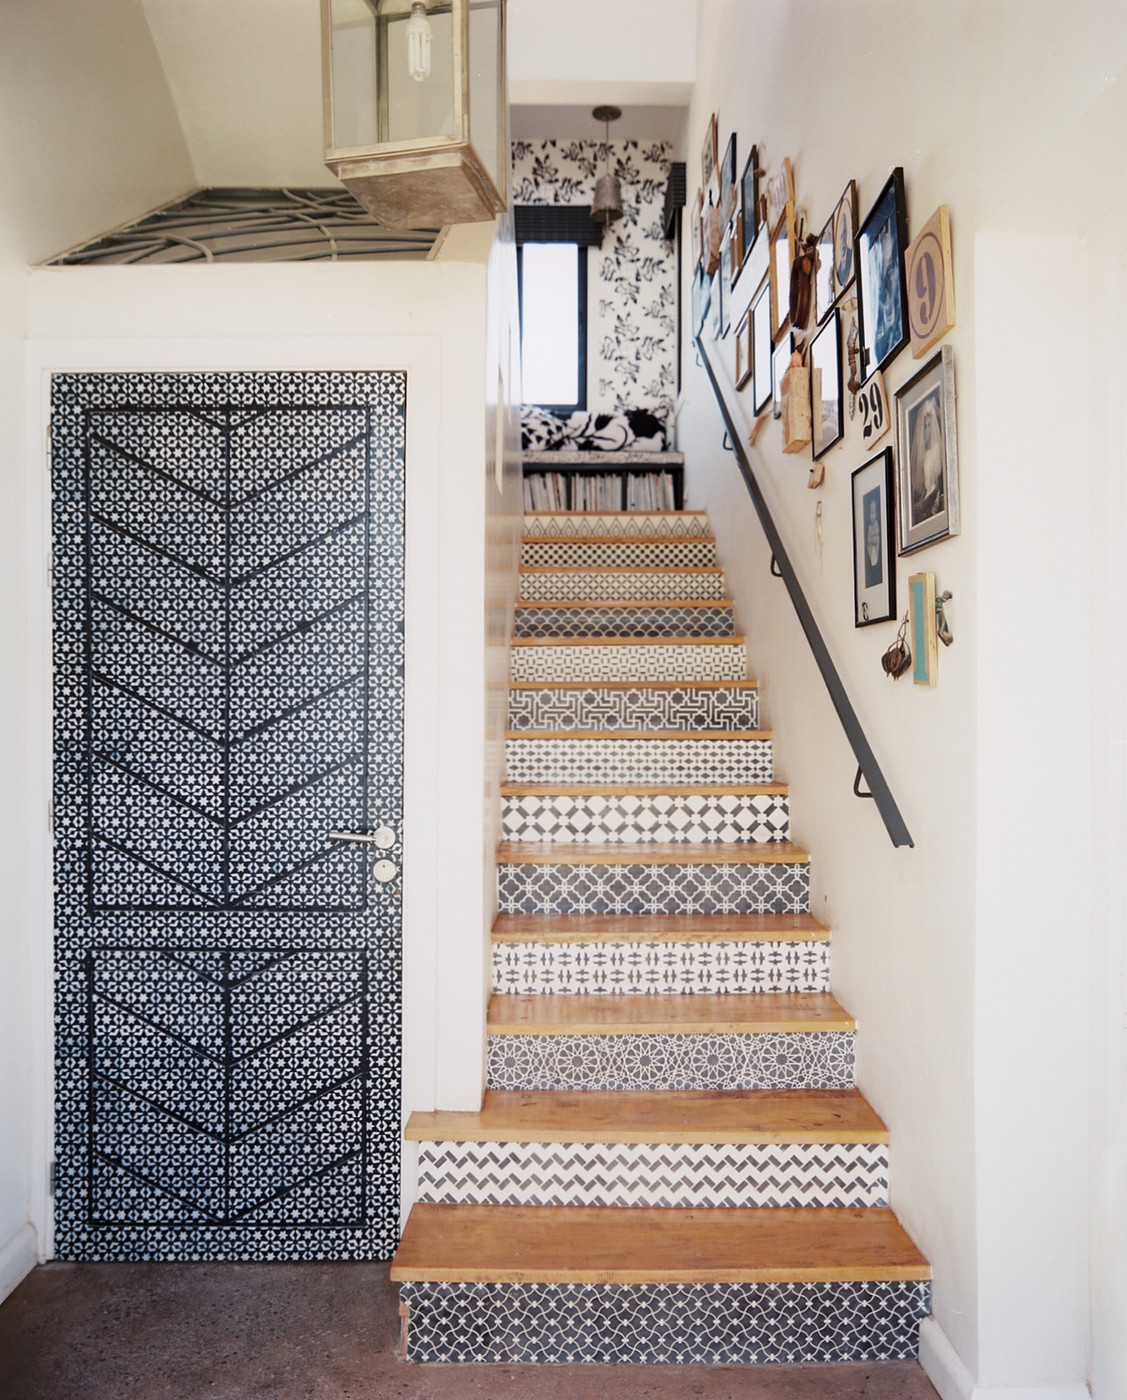 Stenciled Stair Risers Photos, Design, Ideas, Remodel, And Decor   Lonny